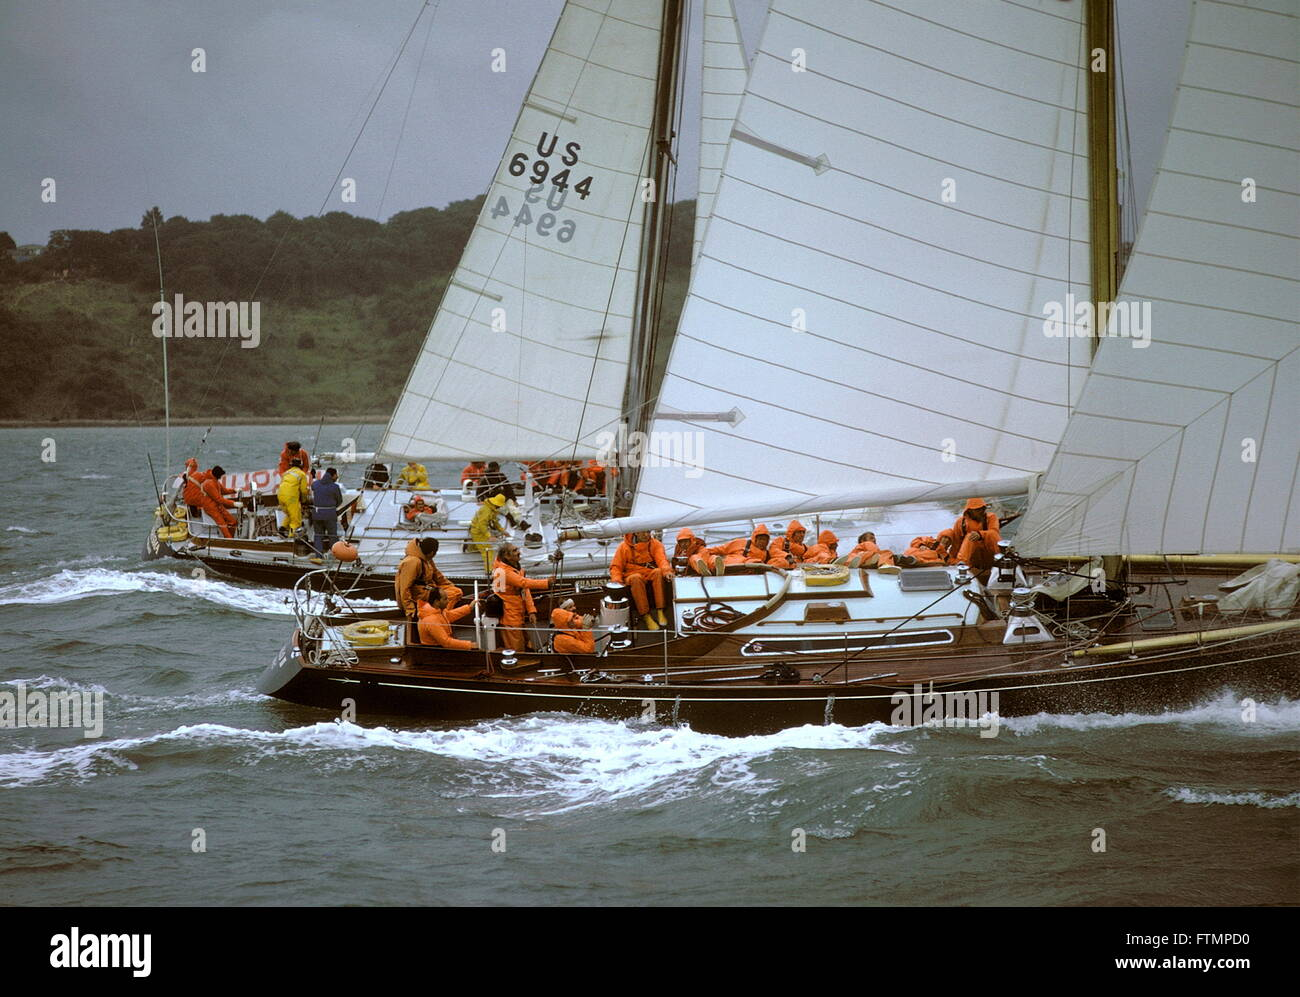 AJAX NEWS PHOTOS - 1973 - ADMIRAL'S CUP - 2ND INSHORE RACE - (L-R) CHARISMA (USA) AND QUIALO III (GB) IN THE - Stock Image